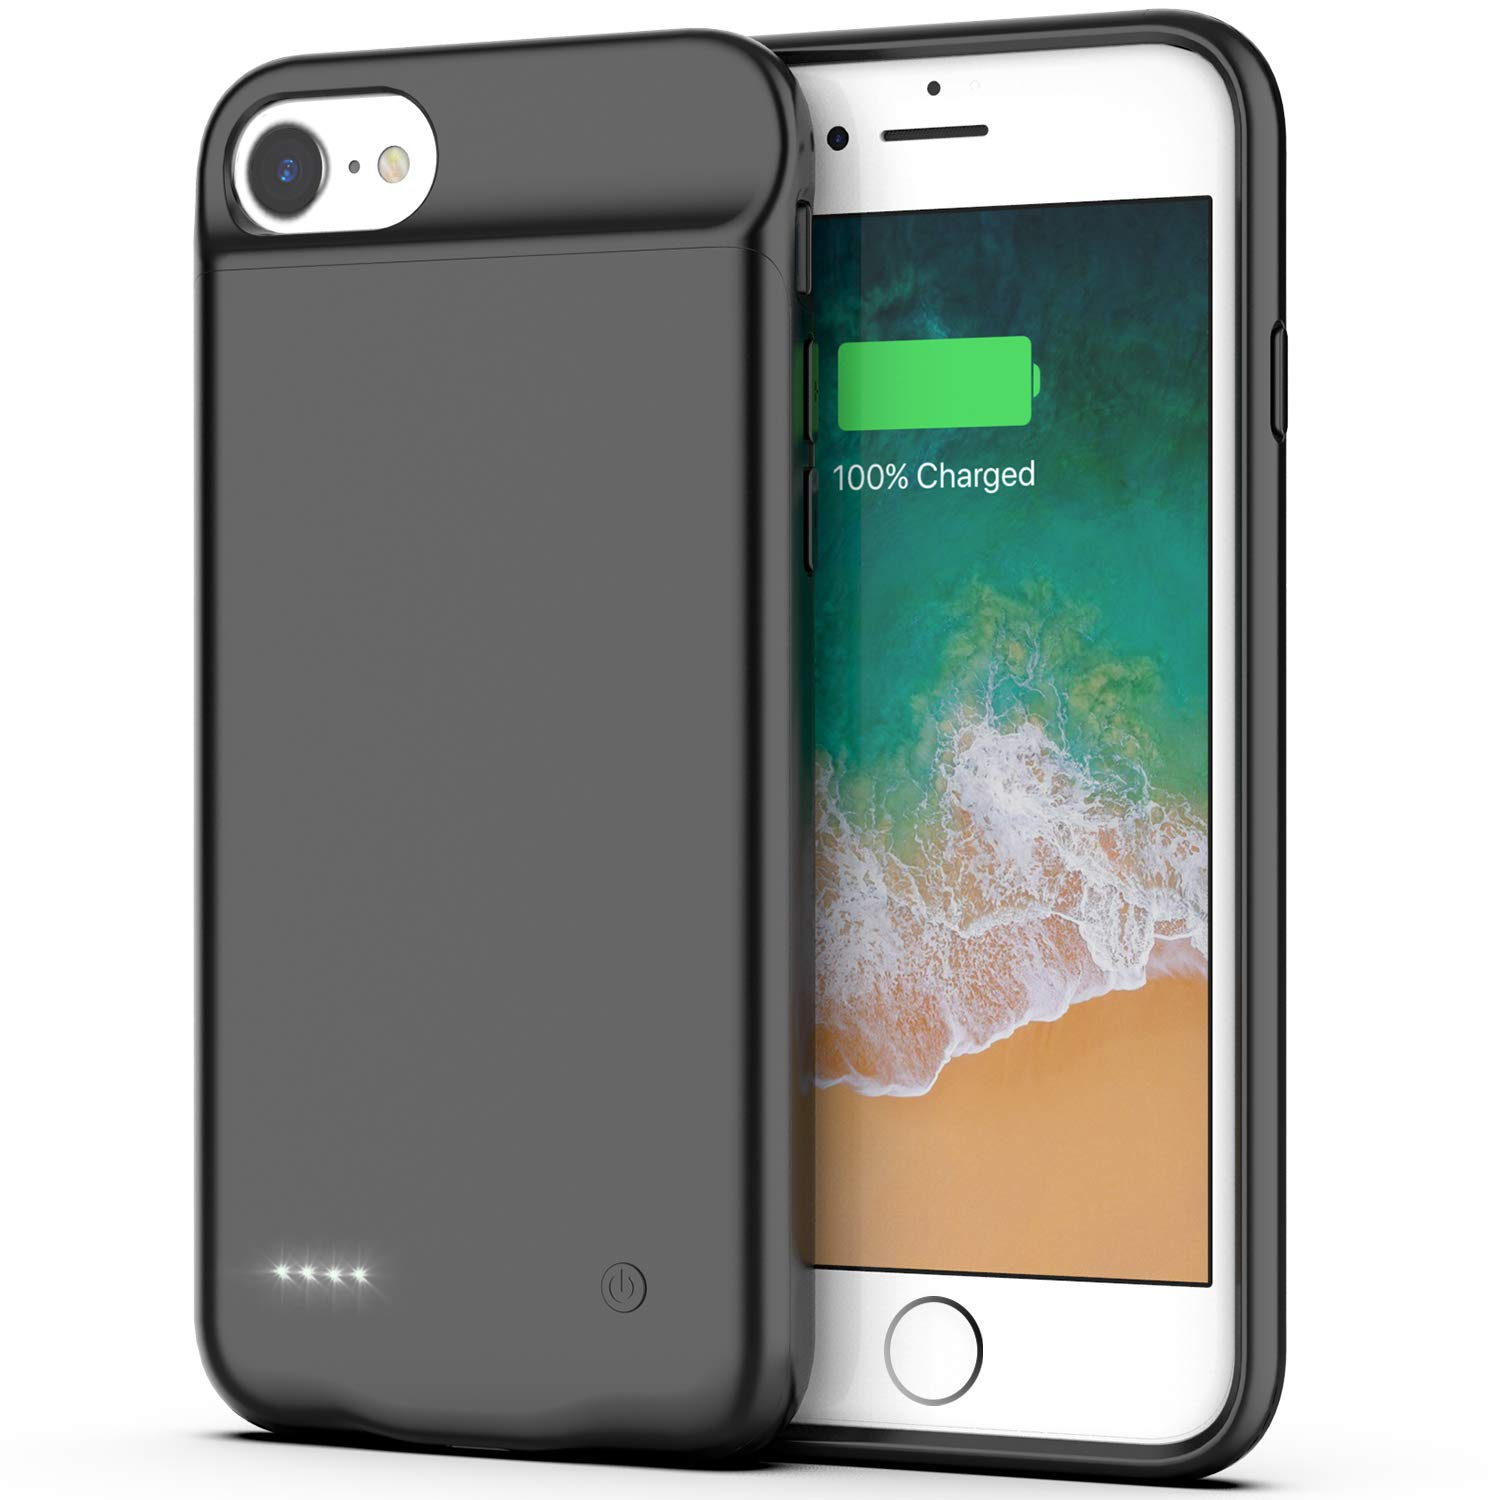 Battery Case for iPhone 7 Plus / 8 Plus / 6s Plus / 6 Plus, 4000mAh Portable Protective Charging Case Extended Rechargeable Battery Pack Compatible with iPhone 7 Plus /8 Plus /6s Plus /6 Plus Szresm 4348690227